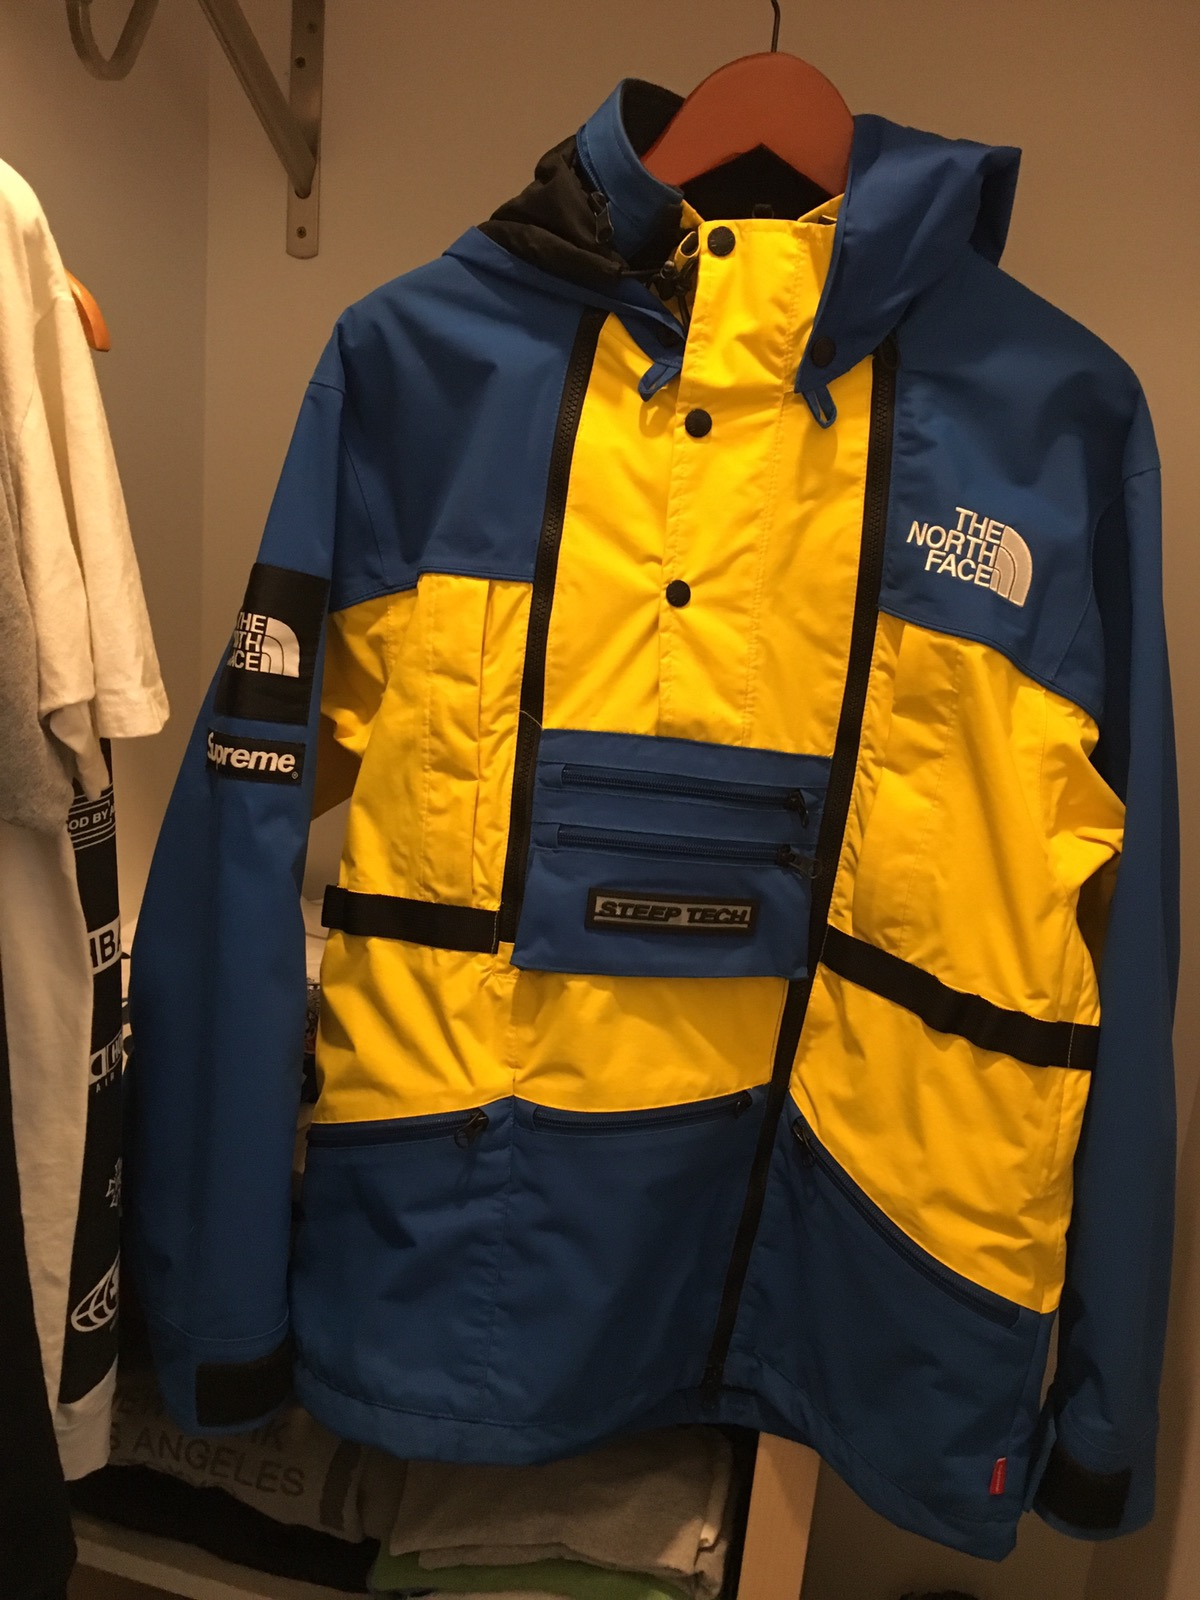 fdfd9518e4 Supreme Supreme X North Face Steep Tech Royal Jacket Size m - Raincoats for  Sale - Grailed